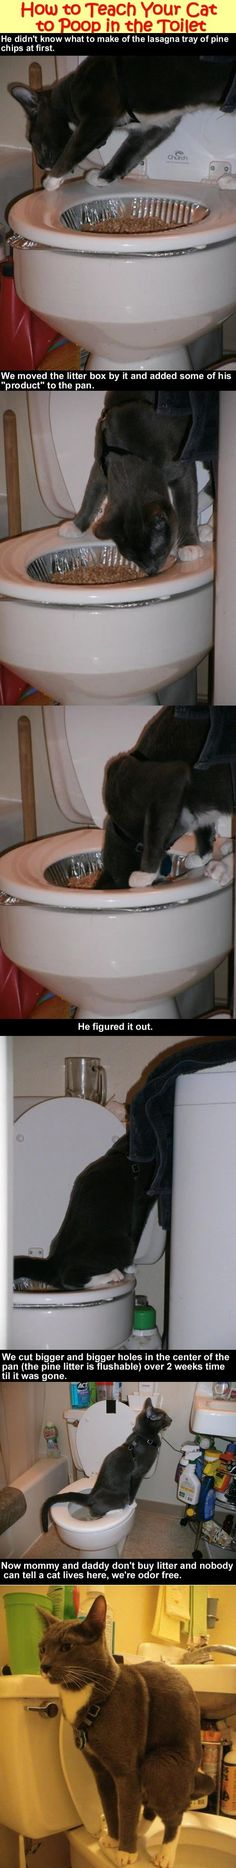 how to teach your cat to use the toilet